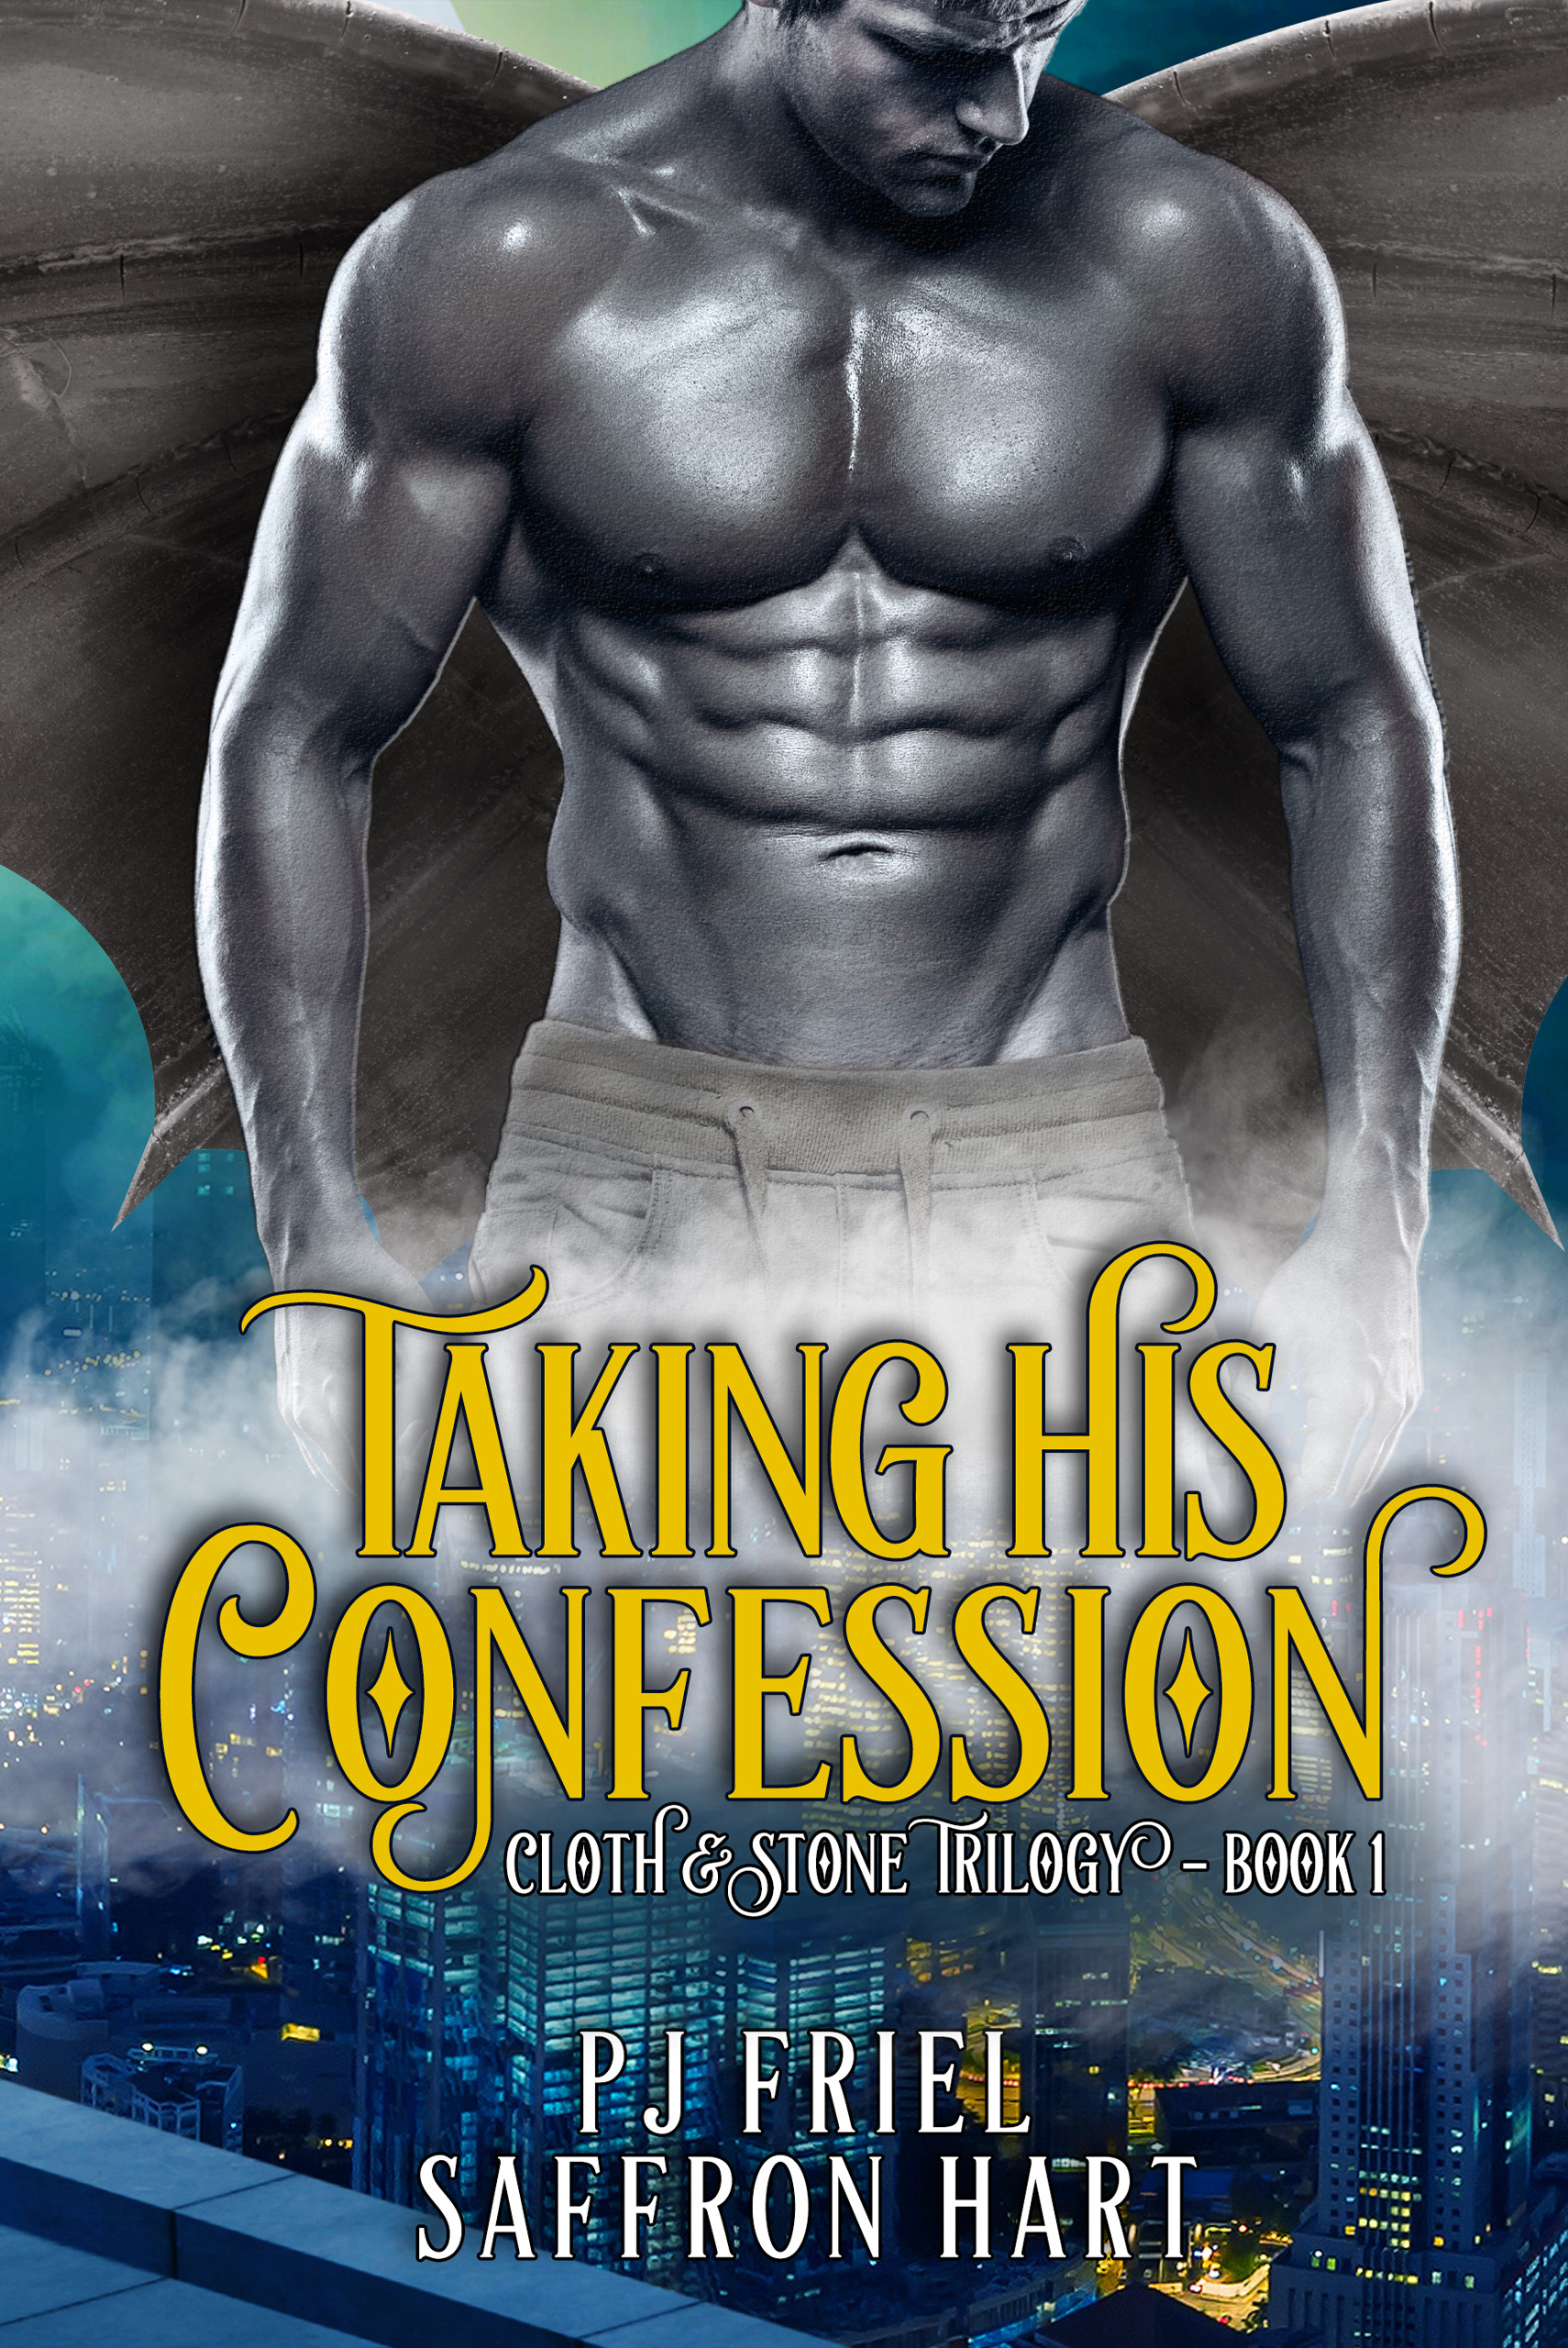 Taking His Confession Book 1 - Cloth & Stone Trilogy